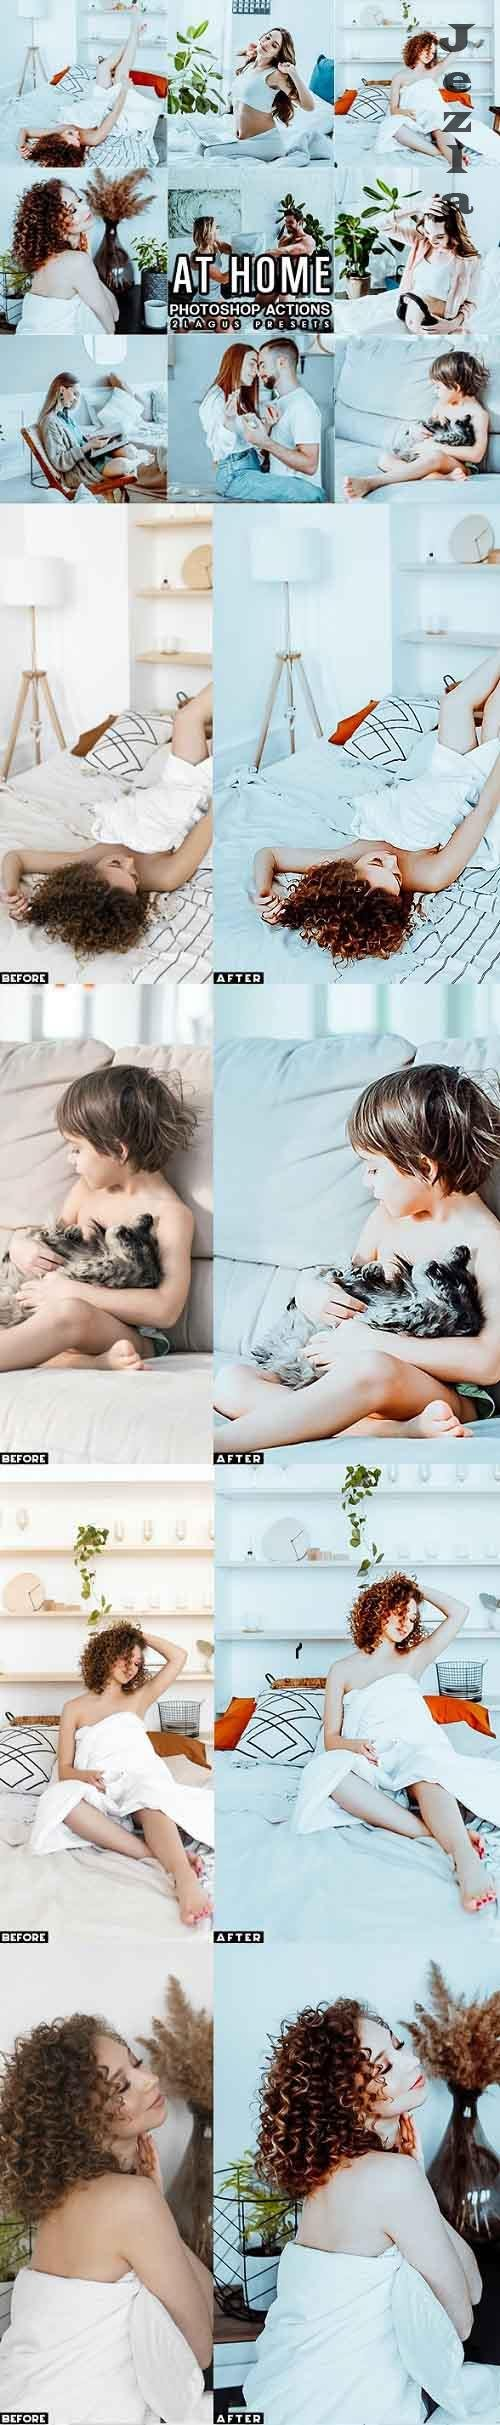 Light & Airy Interior Photoshop Actions - 29848539